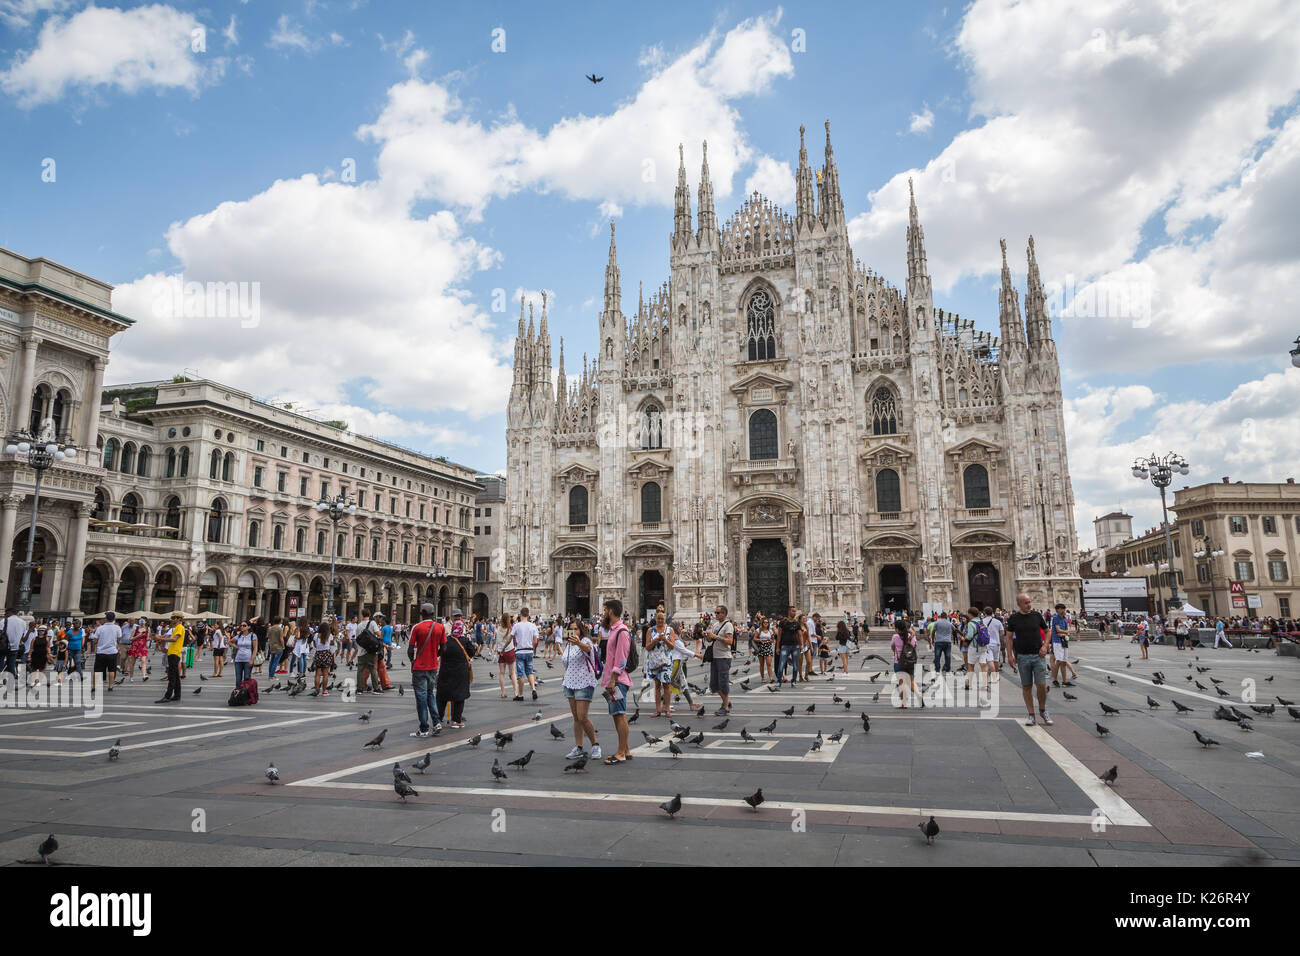 Crowd of tourists in Piazza Duomo, Milan,  Italy - Stock Image